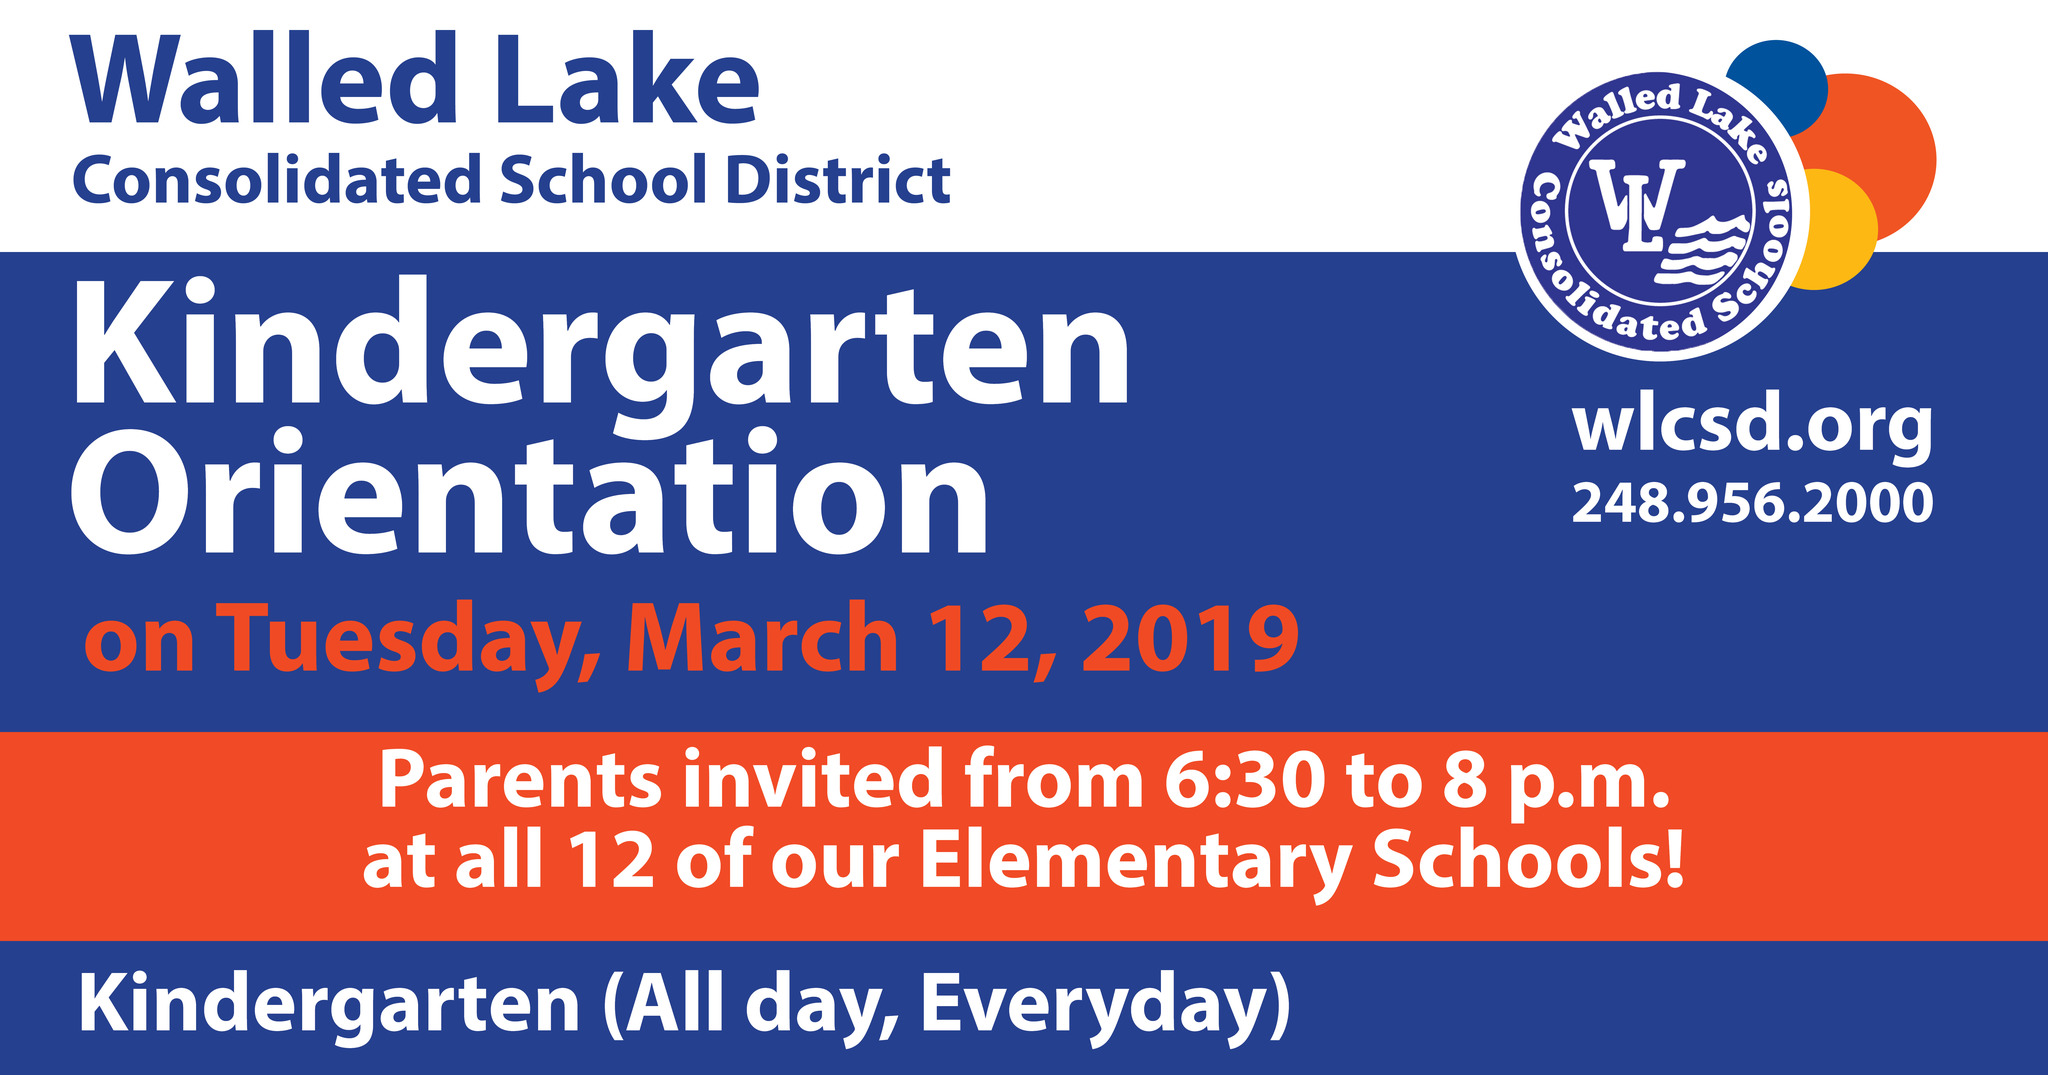 Kindergarten Orientation, Tuesday, March 12, 2019 from 6:30 to 8 p.m. at all 12 elementary schools